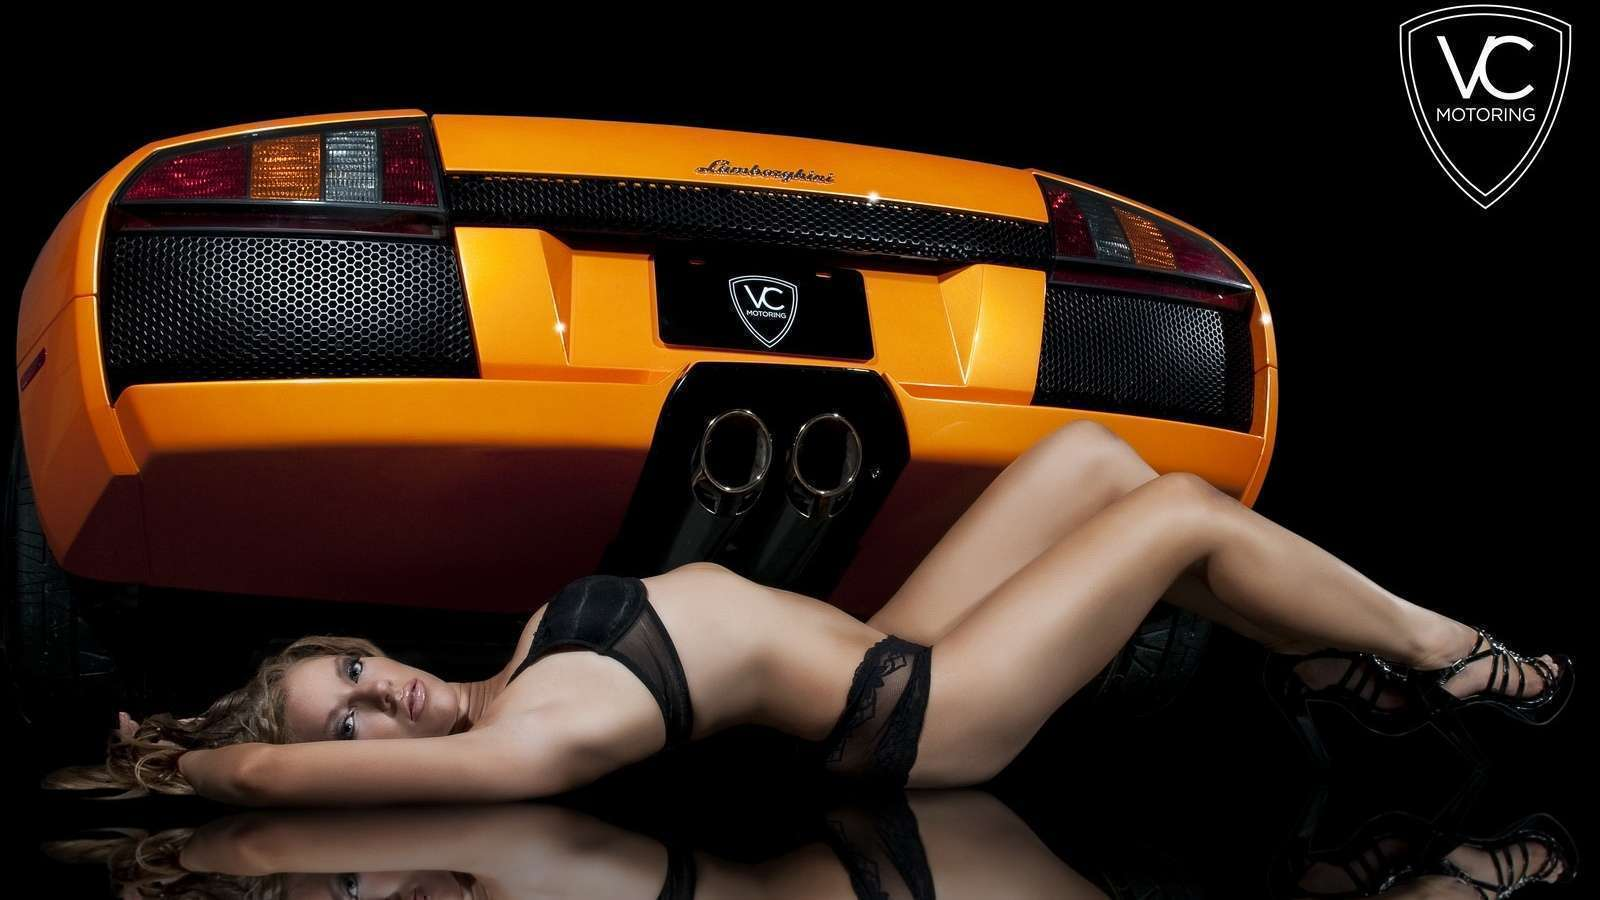 Hot Lady Laying Beside Lamborghini Wallpaper Wallpapers